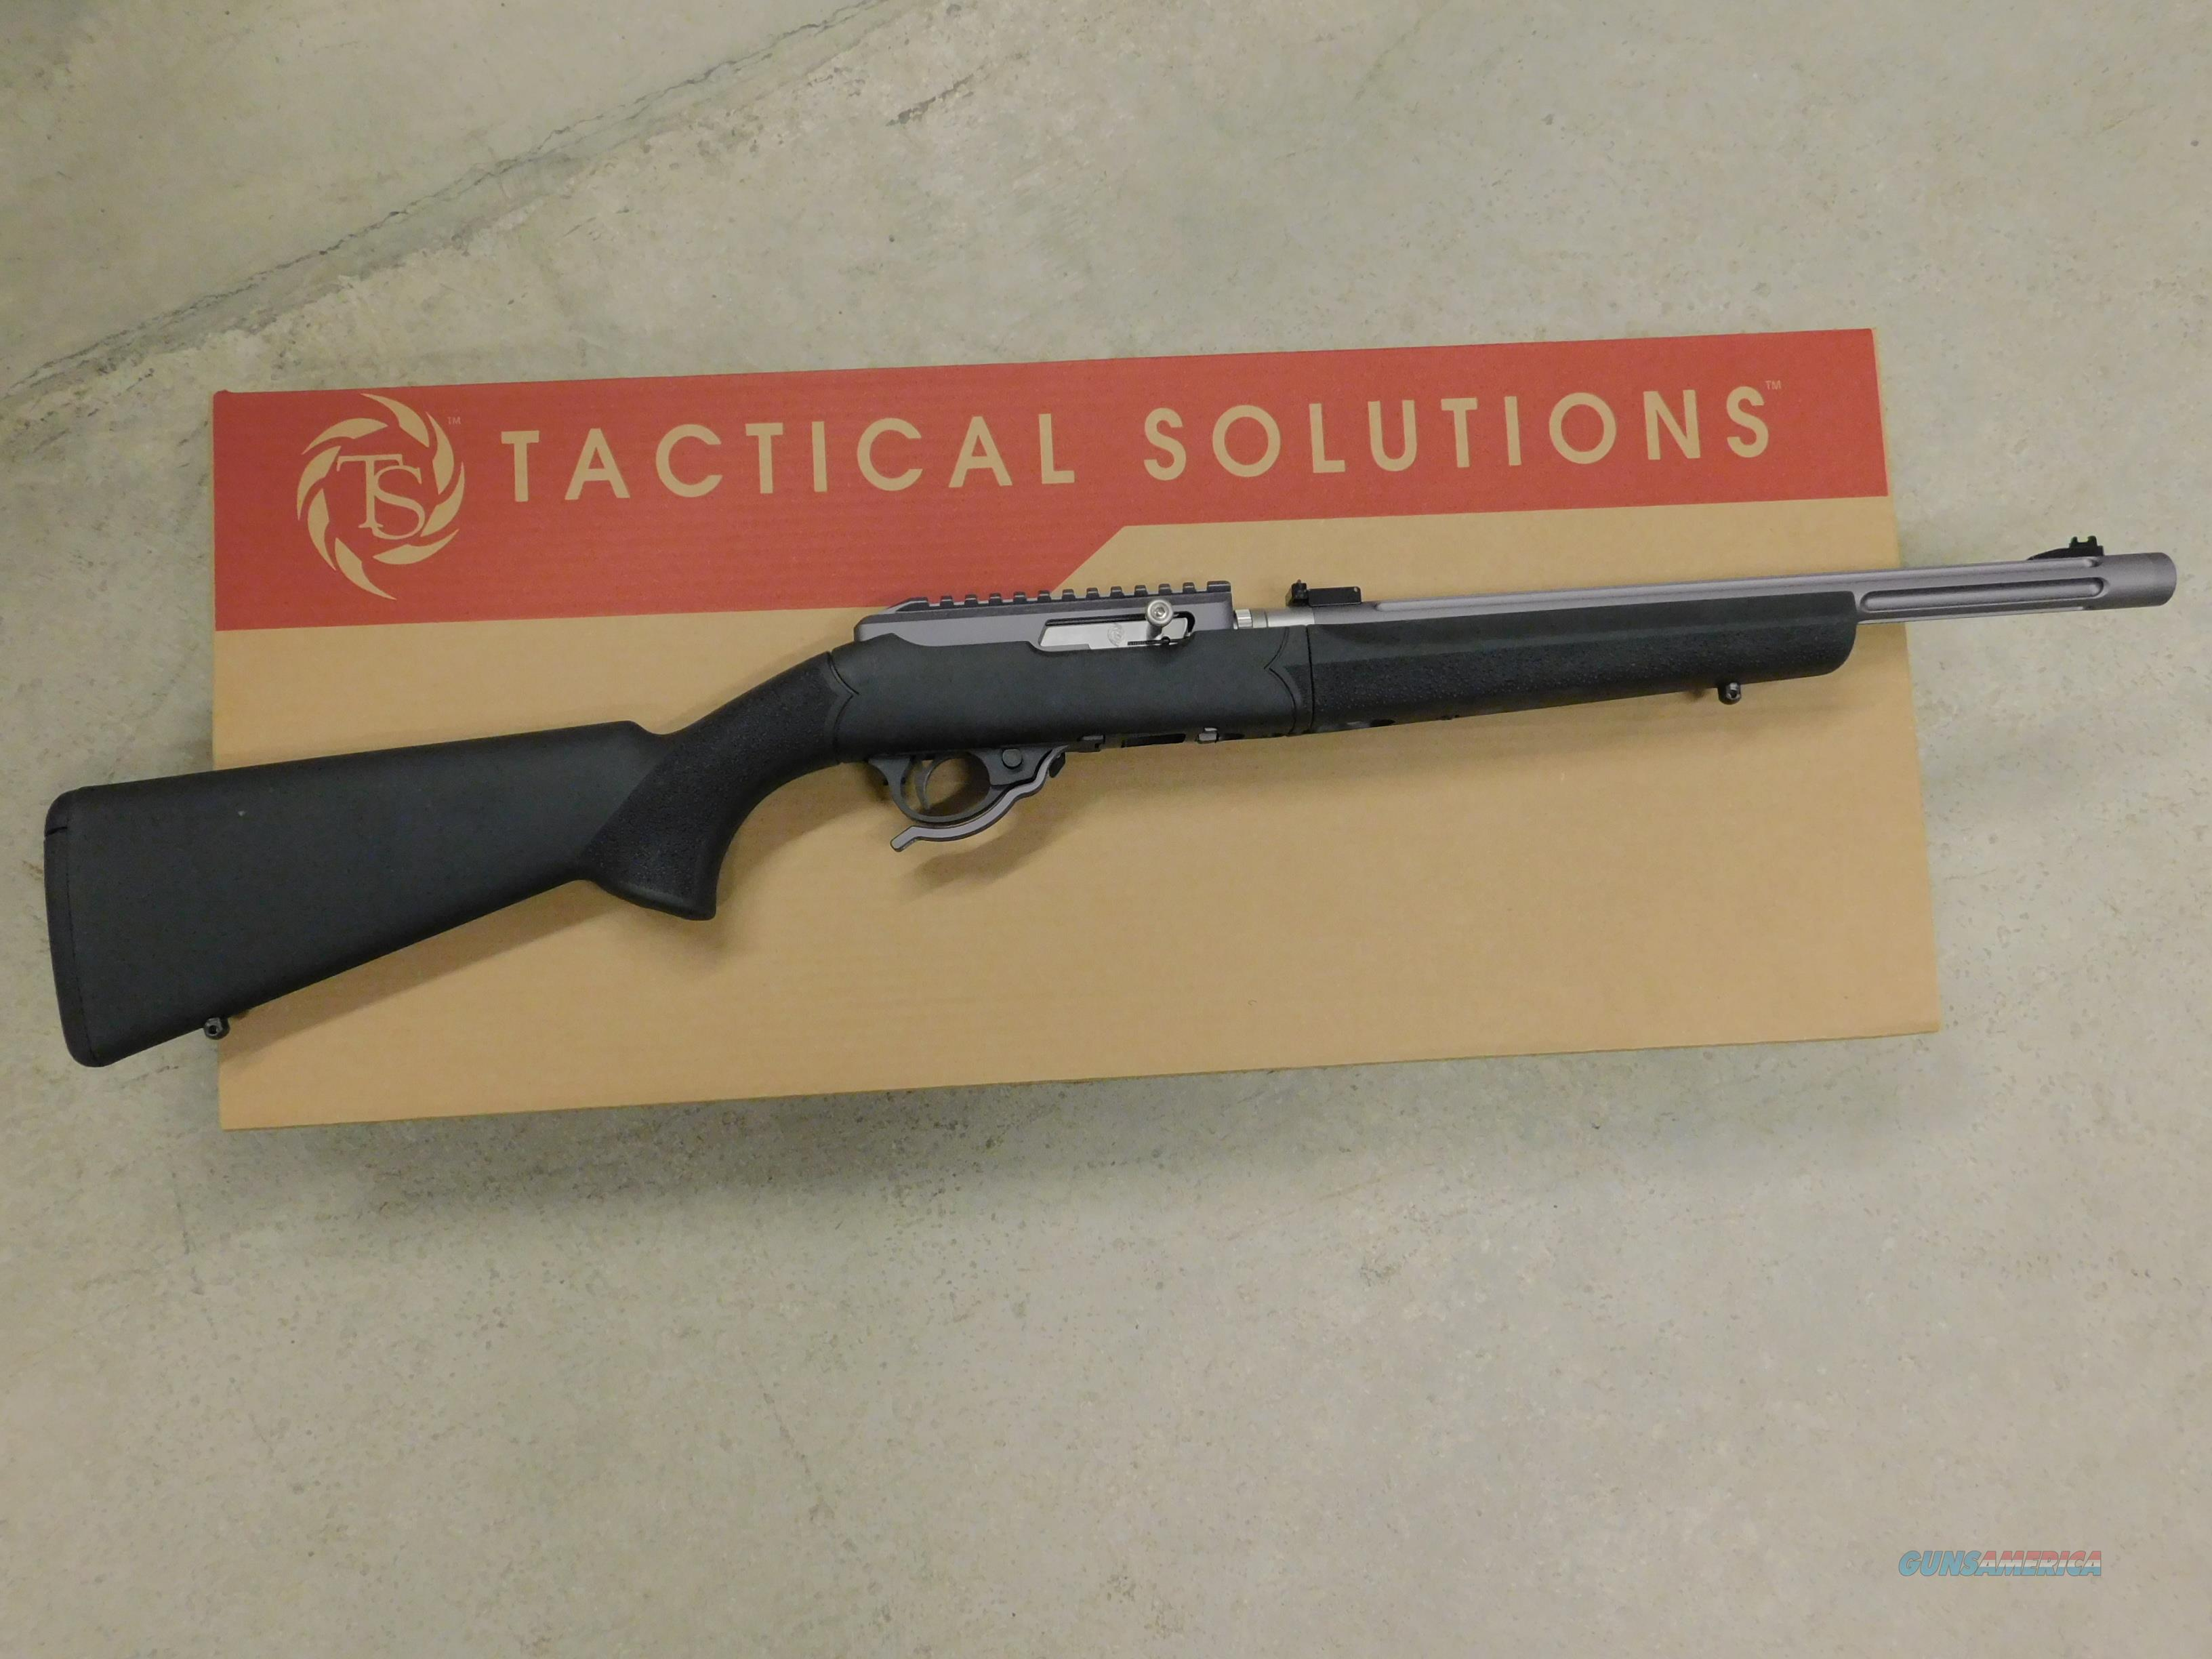 Tactical Solutions 10/22 X-Ring Takedown .22LR BLK/Gun Metal TD-GMG-T-H-BLK  Guns > Rifles > Ruger Rifles > 10-22